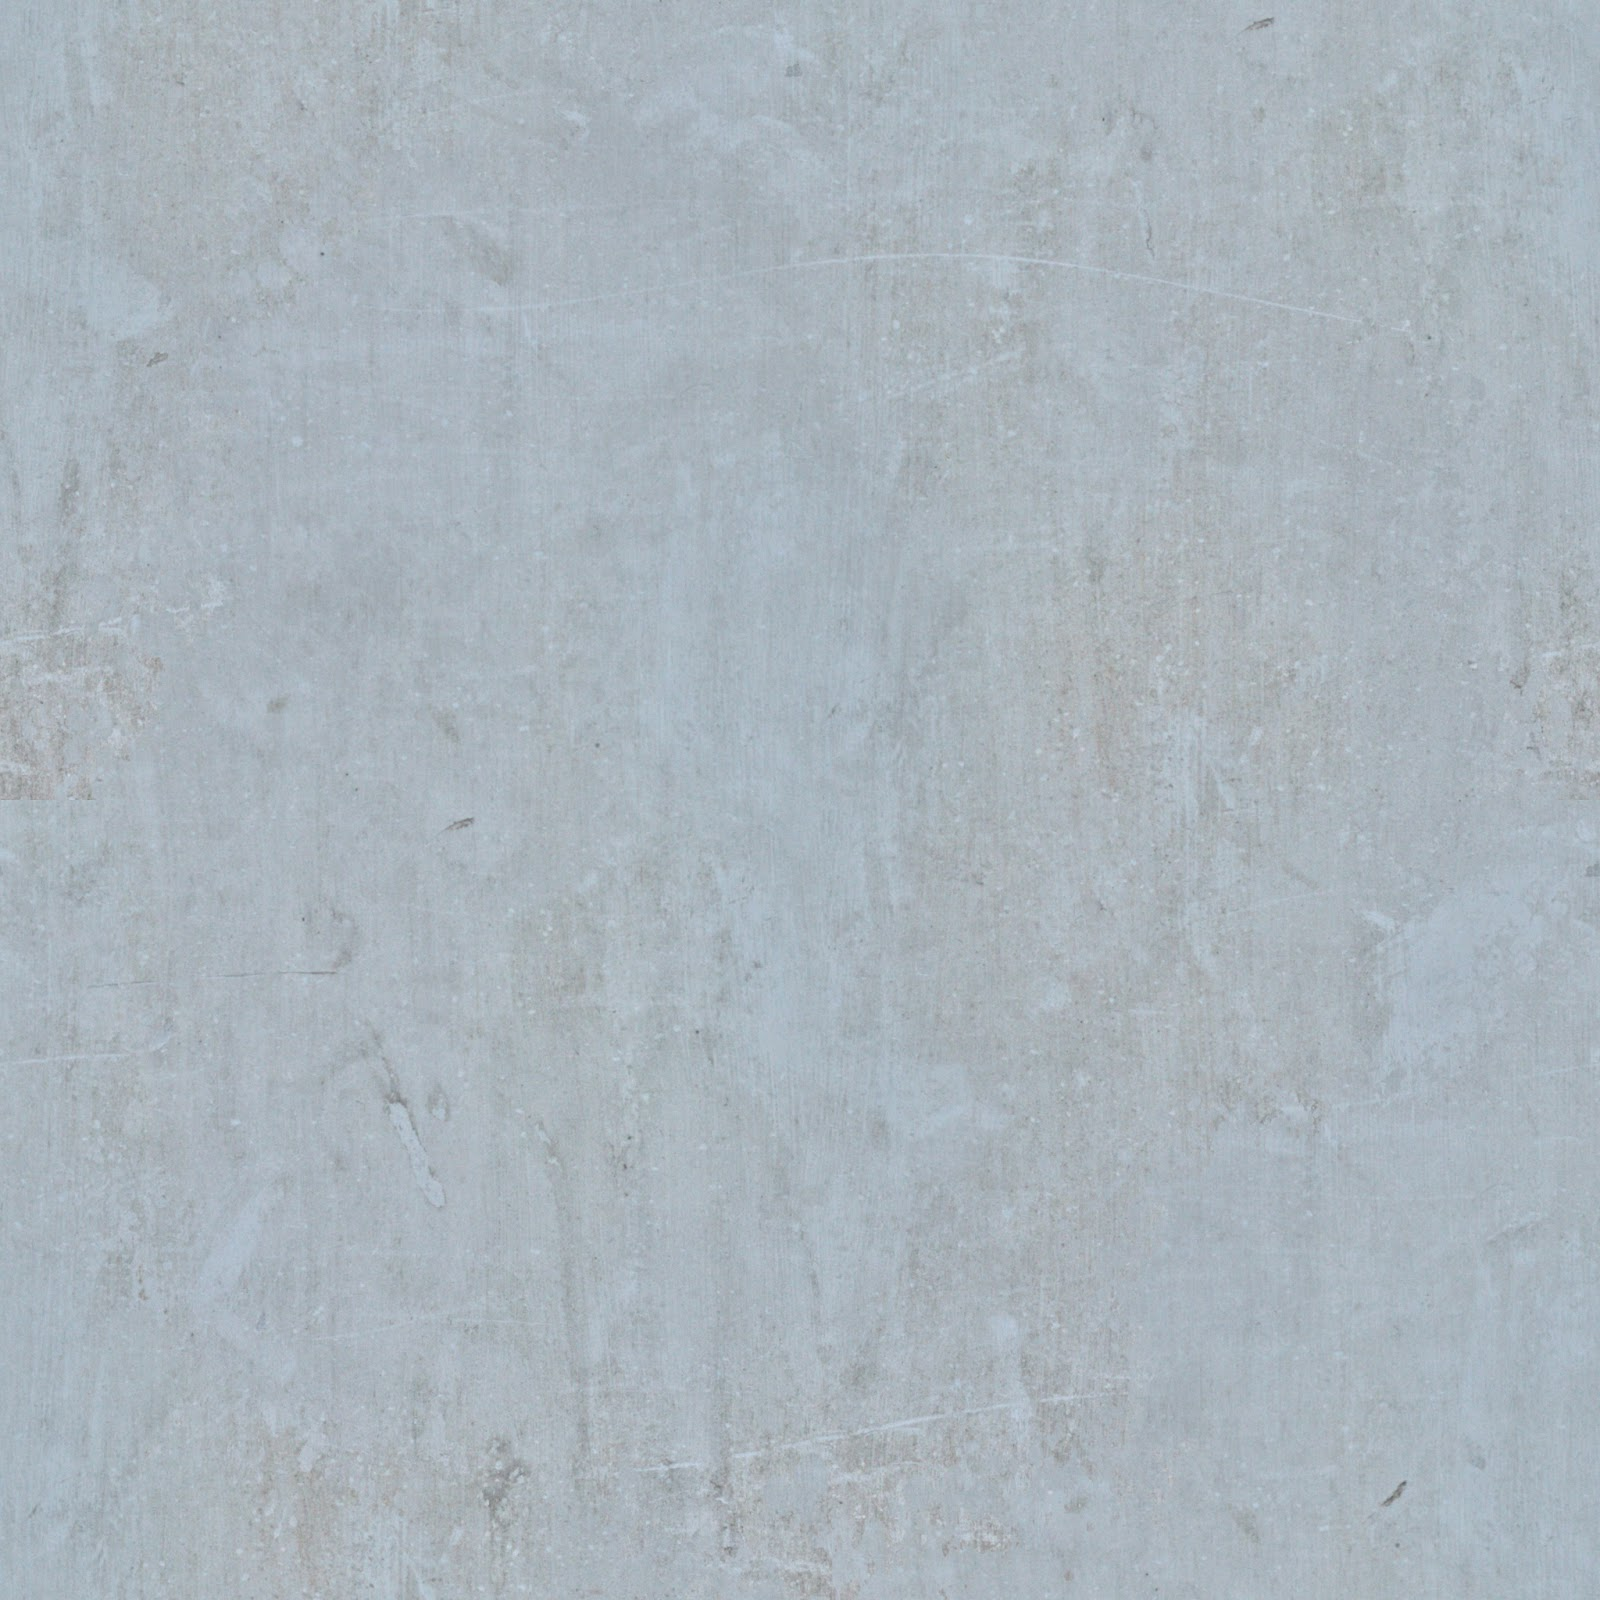 Concrete wall smooth dirty seamless texture 2048x2048